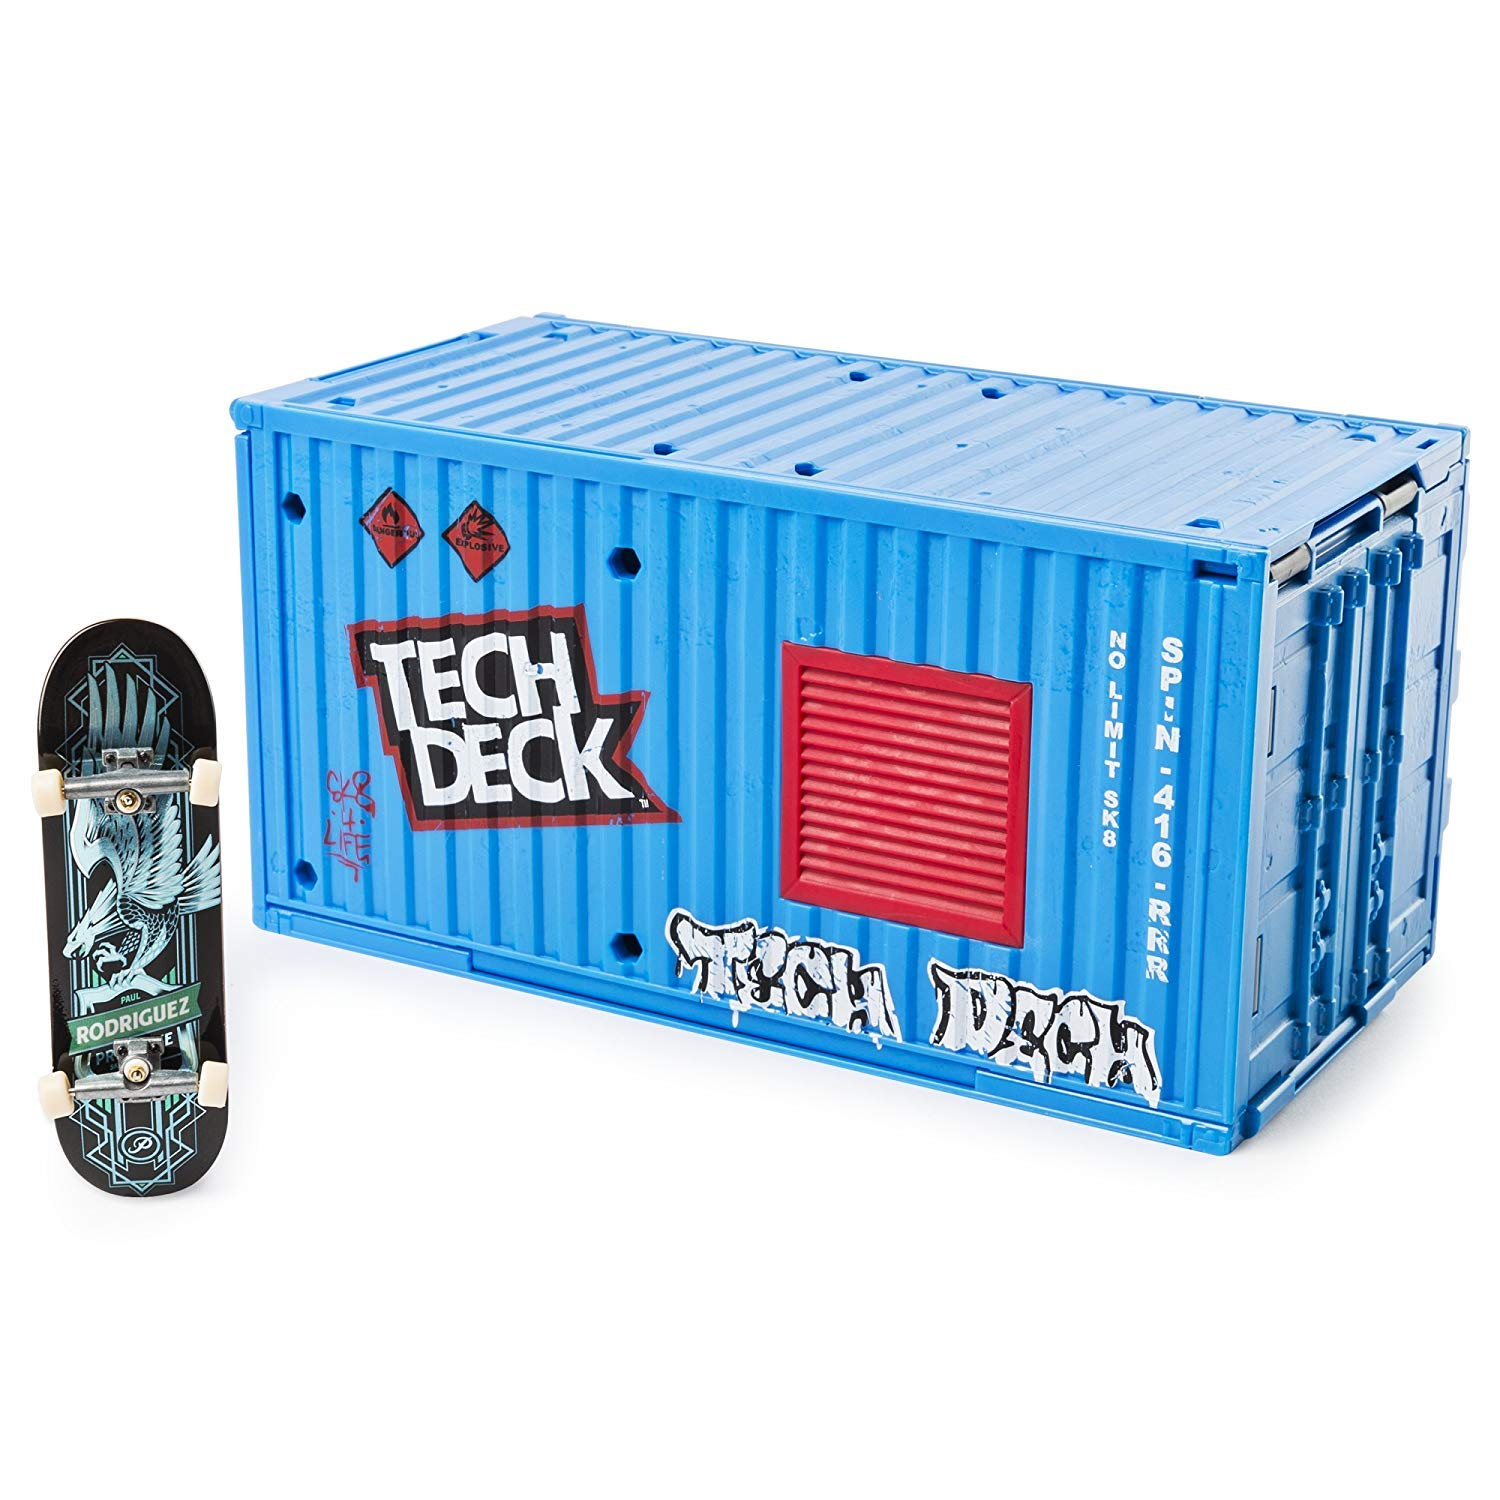 Tech Deck - Transforming SK8 Container with Ramp Set and Skateboard by Tech Deck